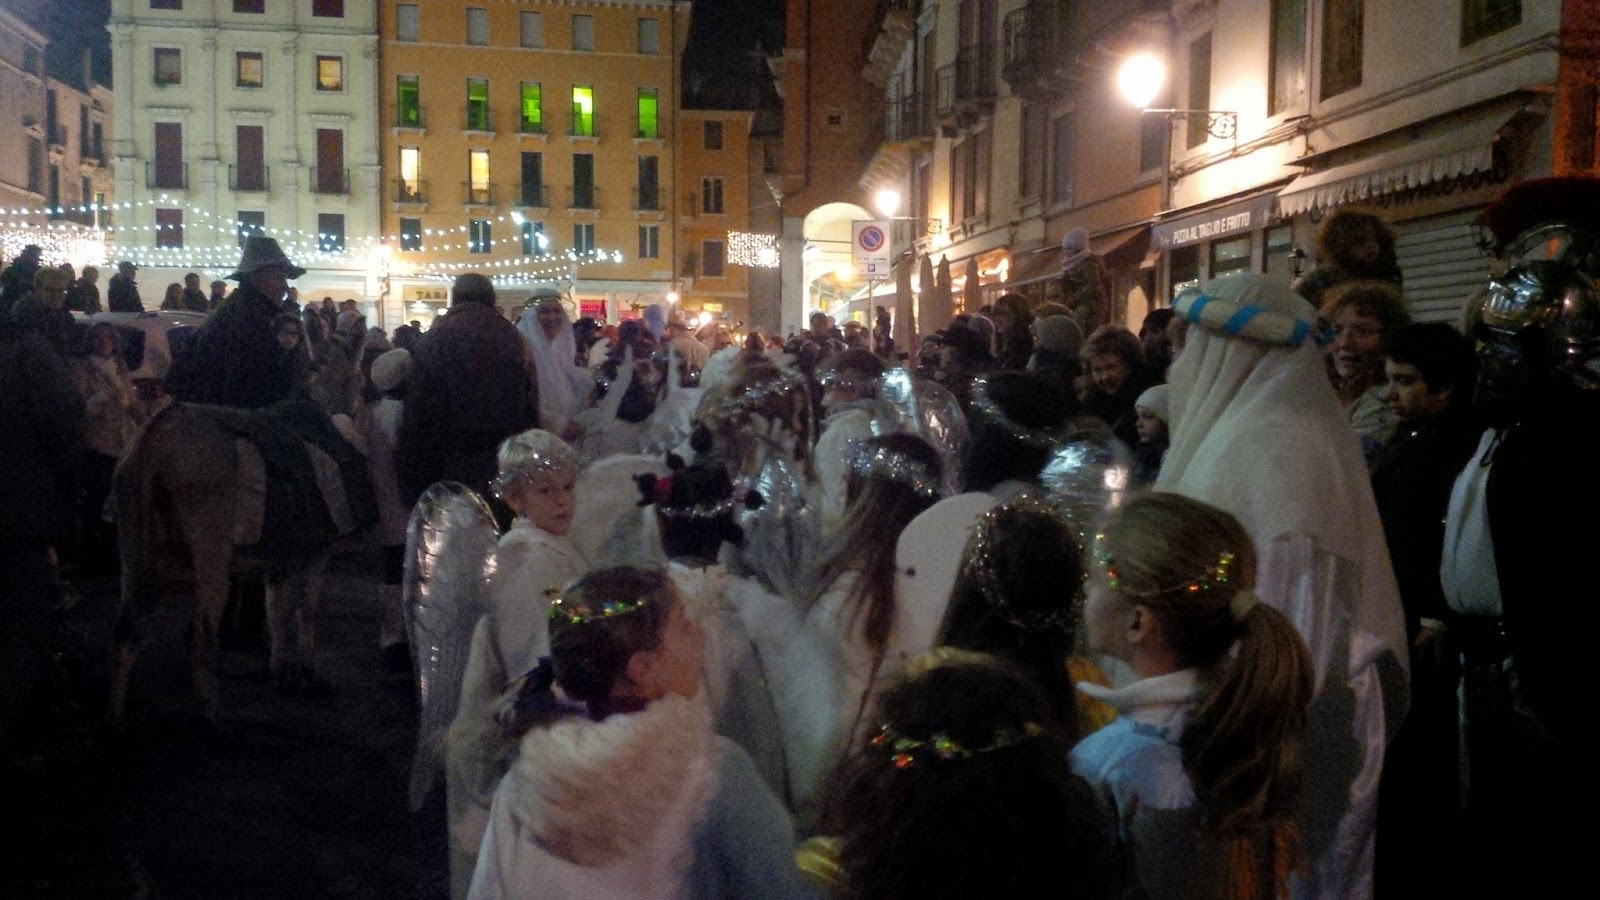 The procession of the Living Nativity Scene in Vicenza